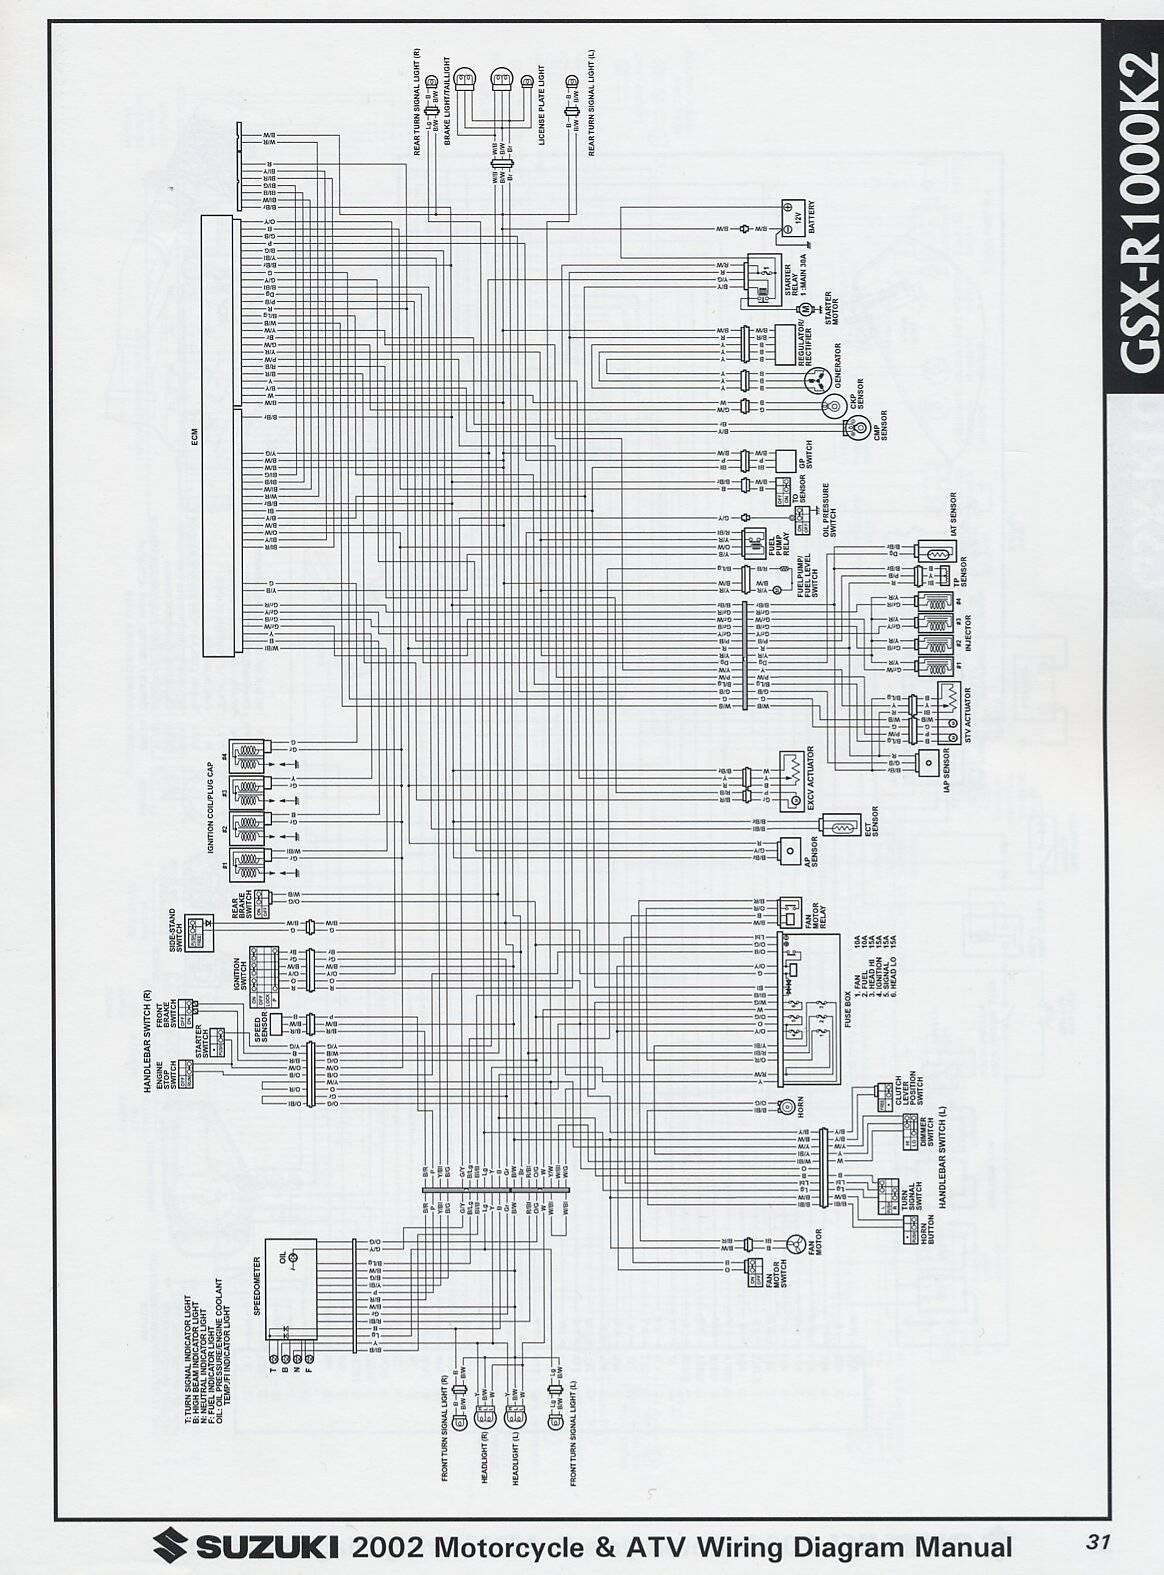 2007 gsxr 600 ignition wiring diagram blue sea dual battery switch 2002 750 library